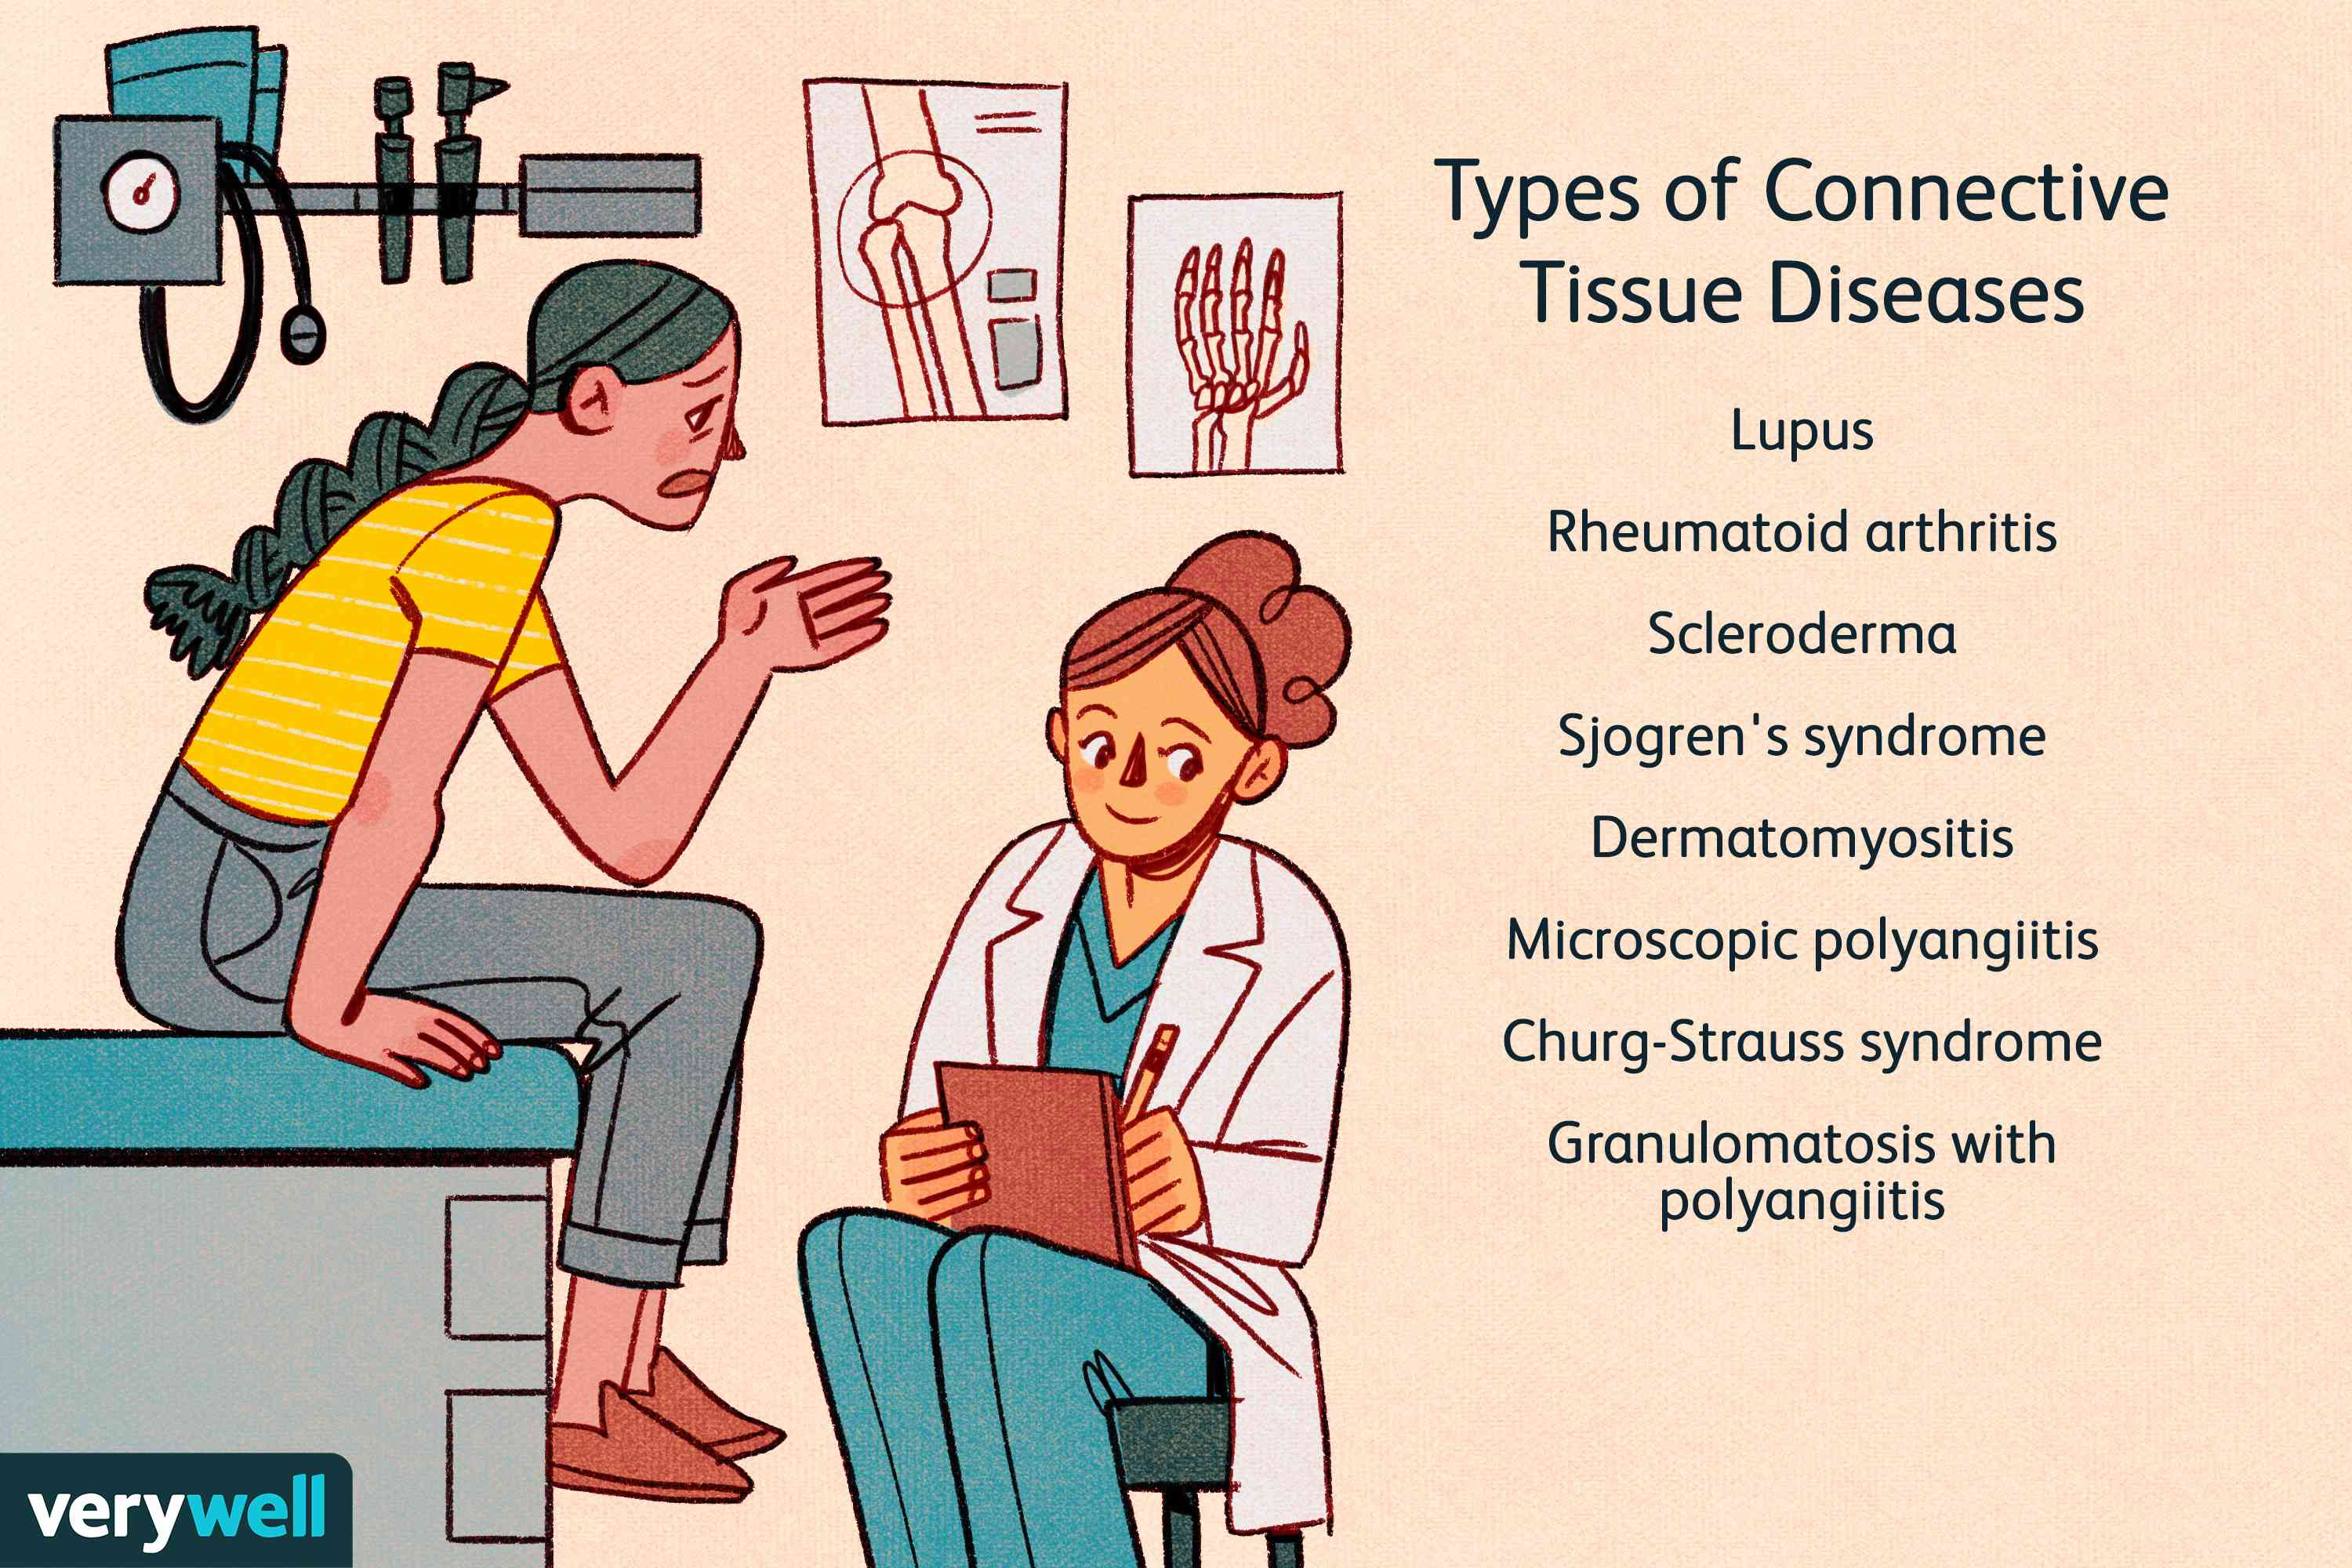 Types of Connective Tissue Diseases